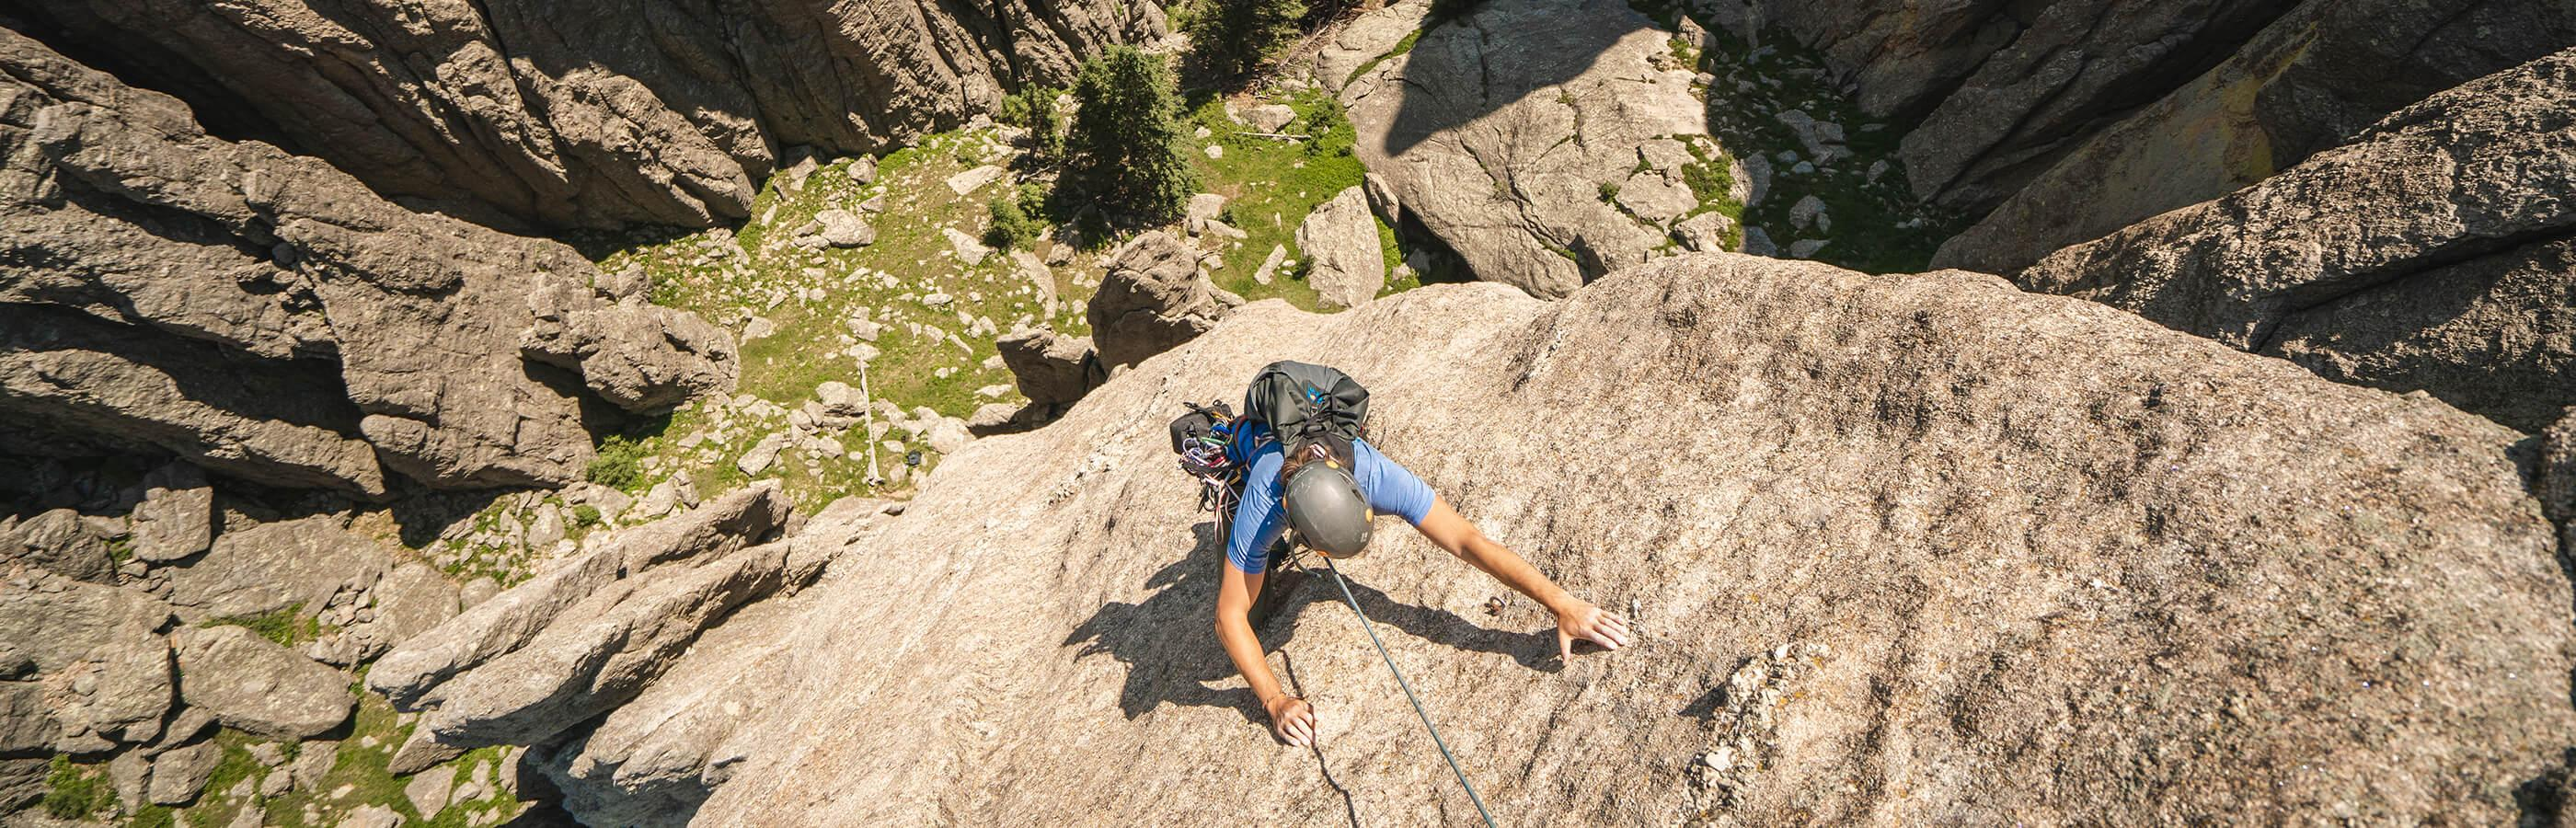 Man Mountain Climbing in Custer State Park